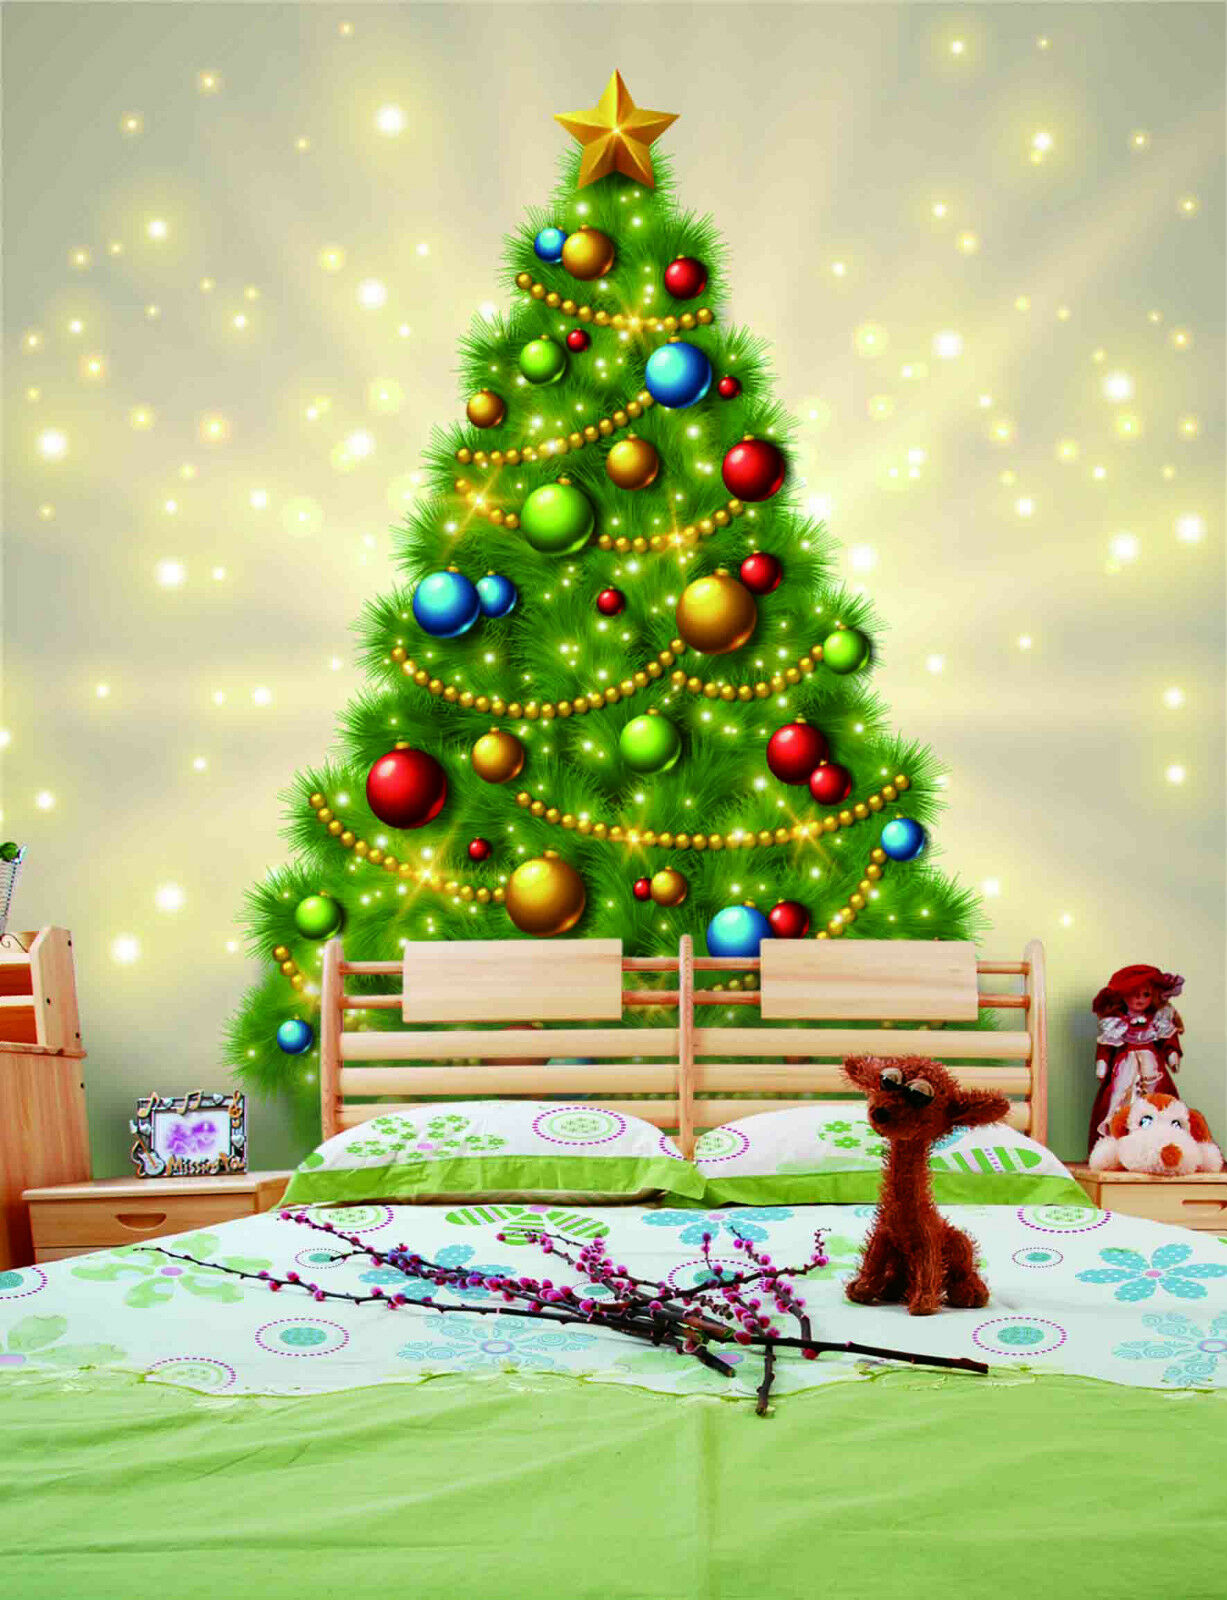 3D Farbeful Christmas Tree 33 Wall Paper Wall Print Decal Wall Deco Indoor Wall